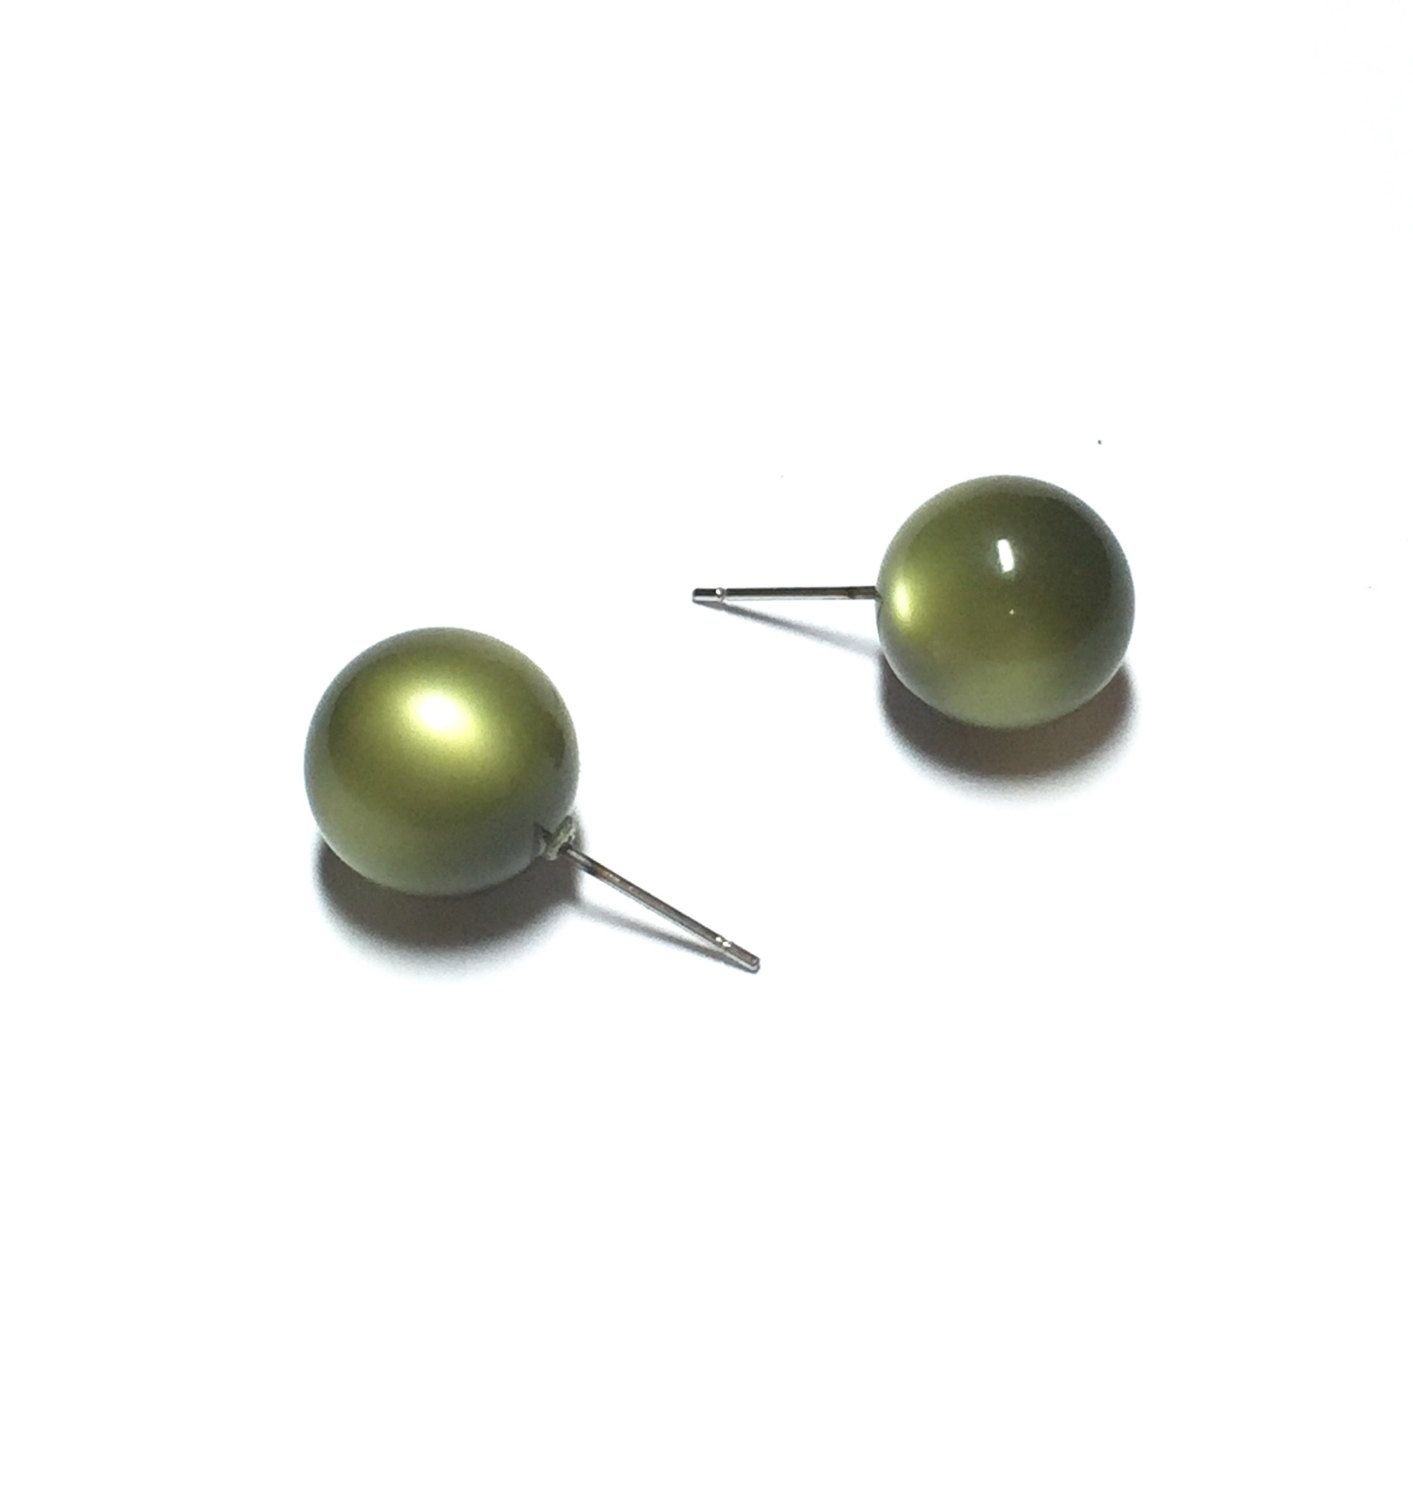 Olive Green Stud Earrings Moss Moonglow Studs Vintage Lucite